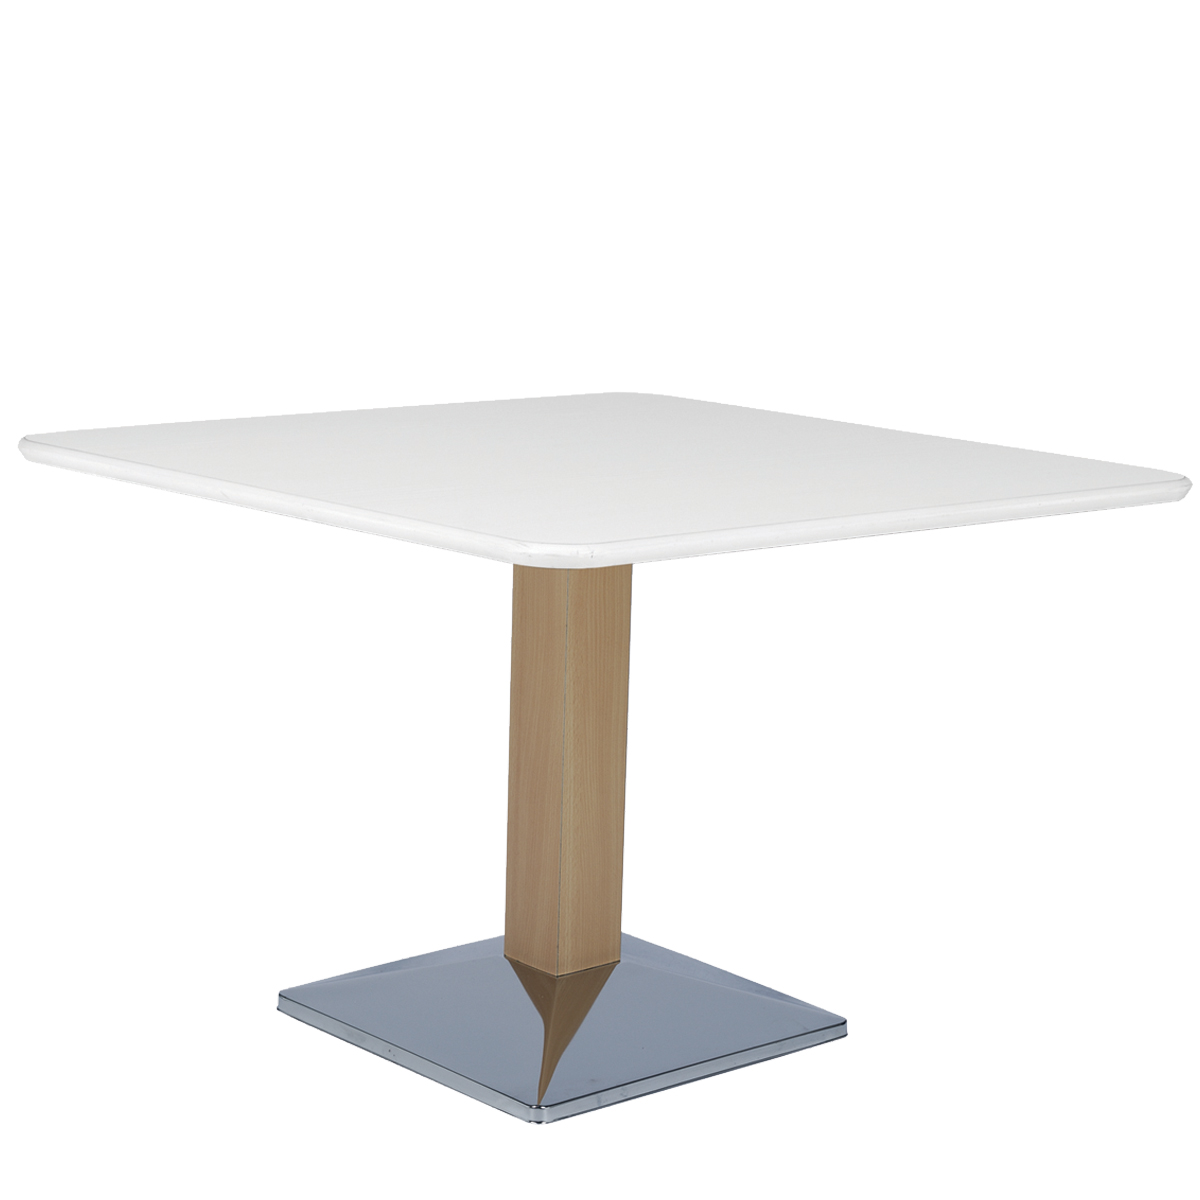 Table Basse Bois Blanc Table Basse Bois Blanc Maison Design Wiblia